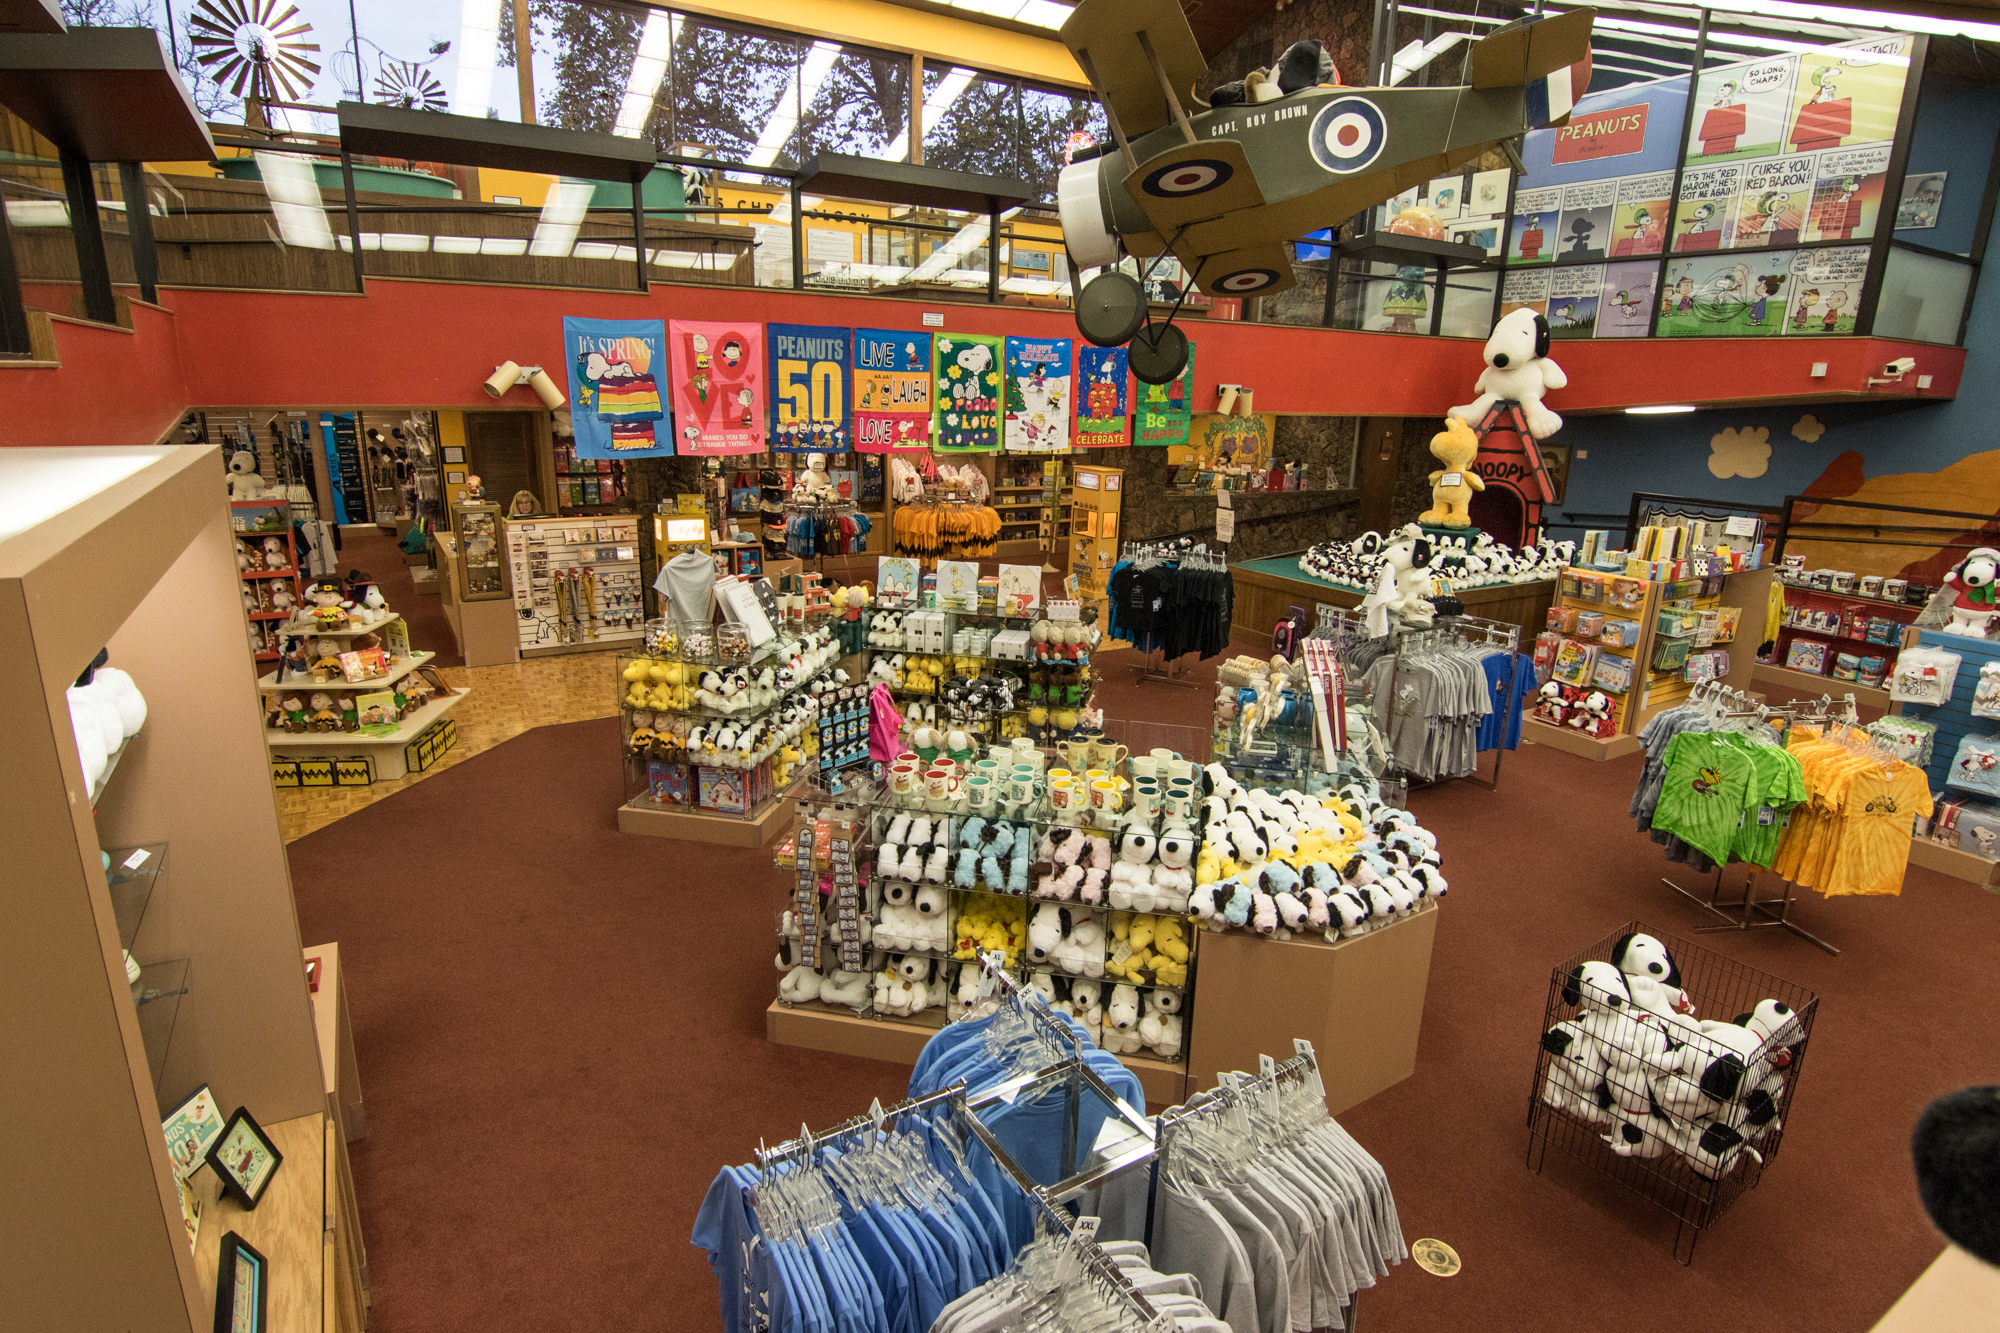 Snoopy's Gallery & Gift Shop - Inside